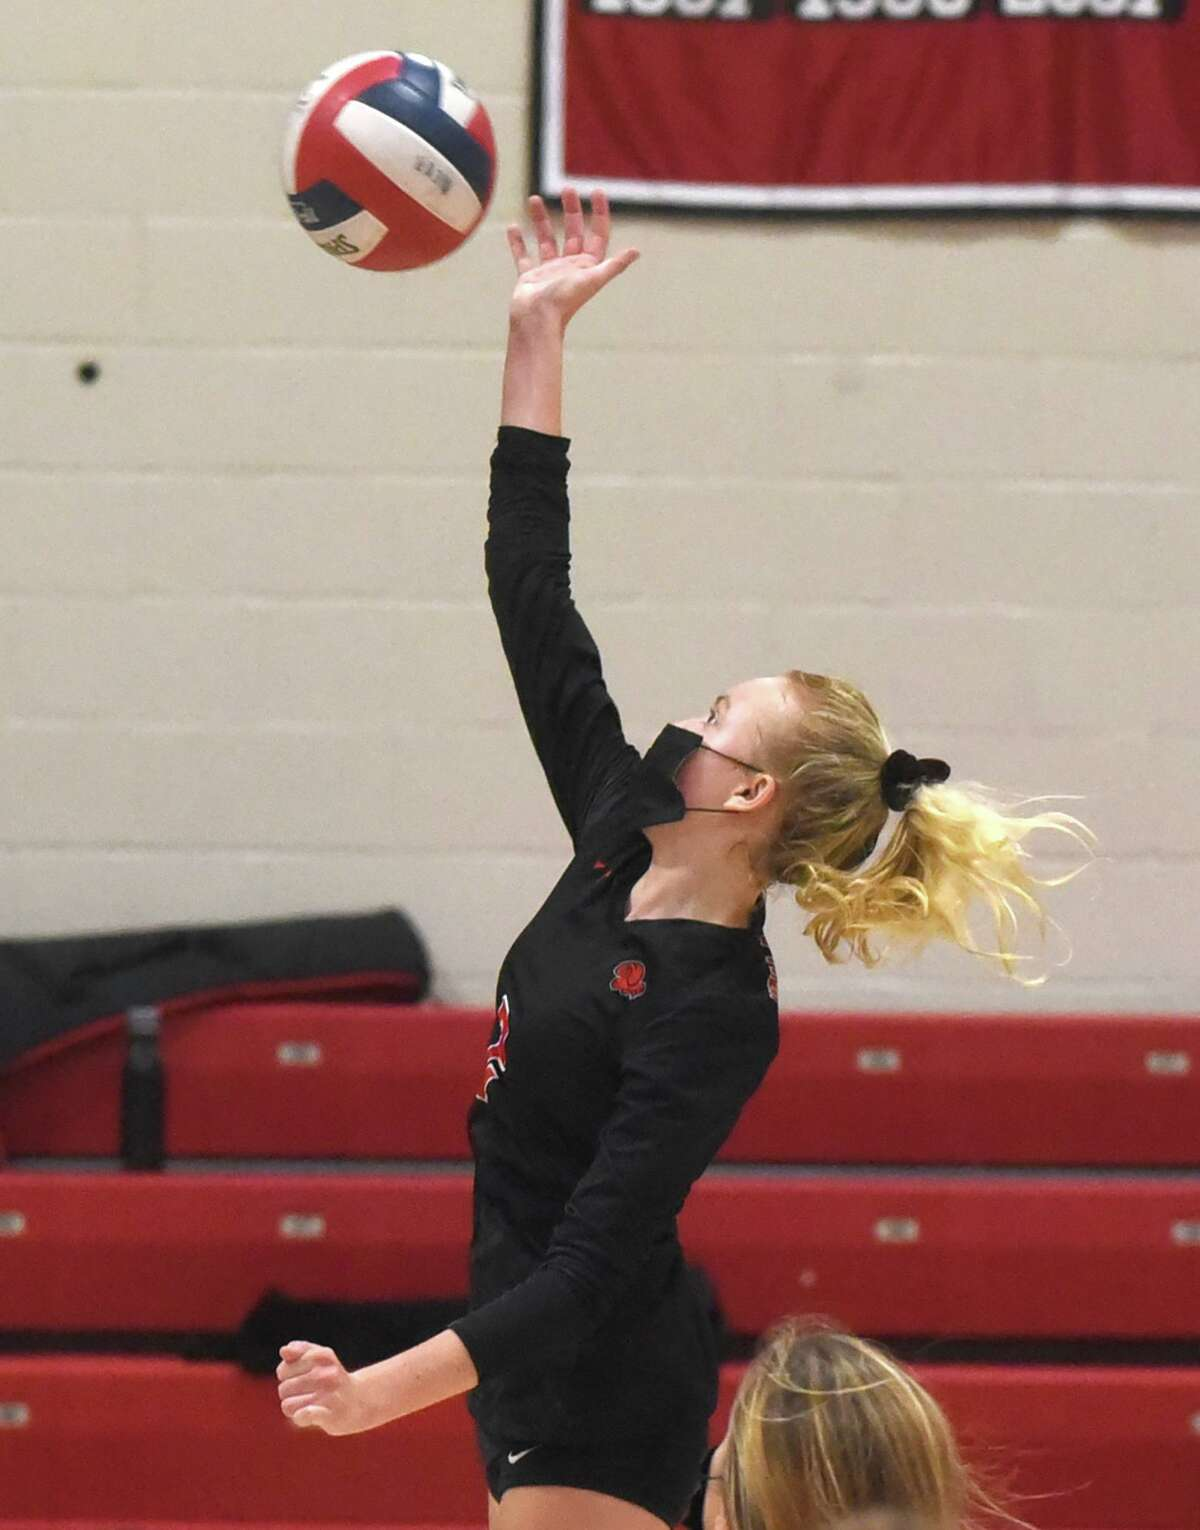 New Canaan's Elle Sneddon (2) goes up for a shot during a girls volleyball match against Greenwich in New Canaan on Thursday, Oct. 22, 2020.